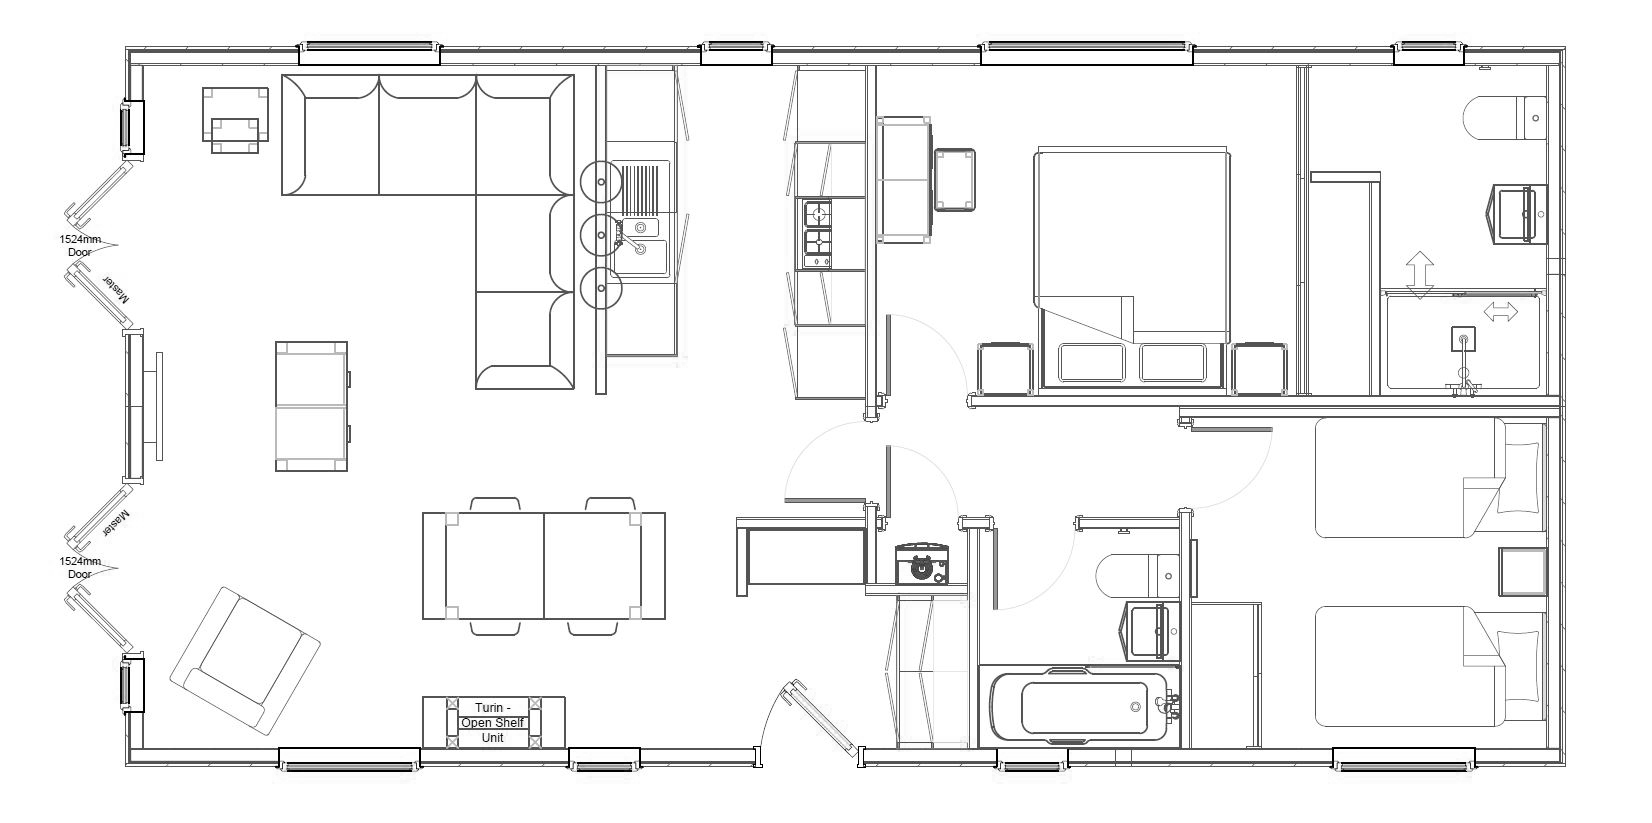 2 Bed Bowmoor Lodge Floorplan